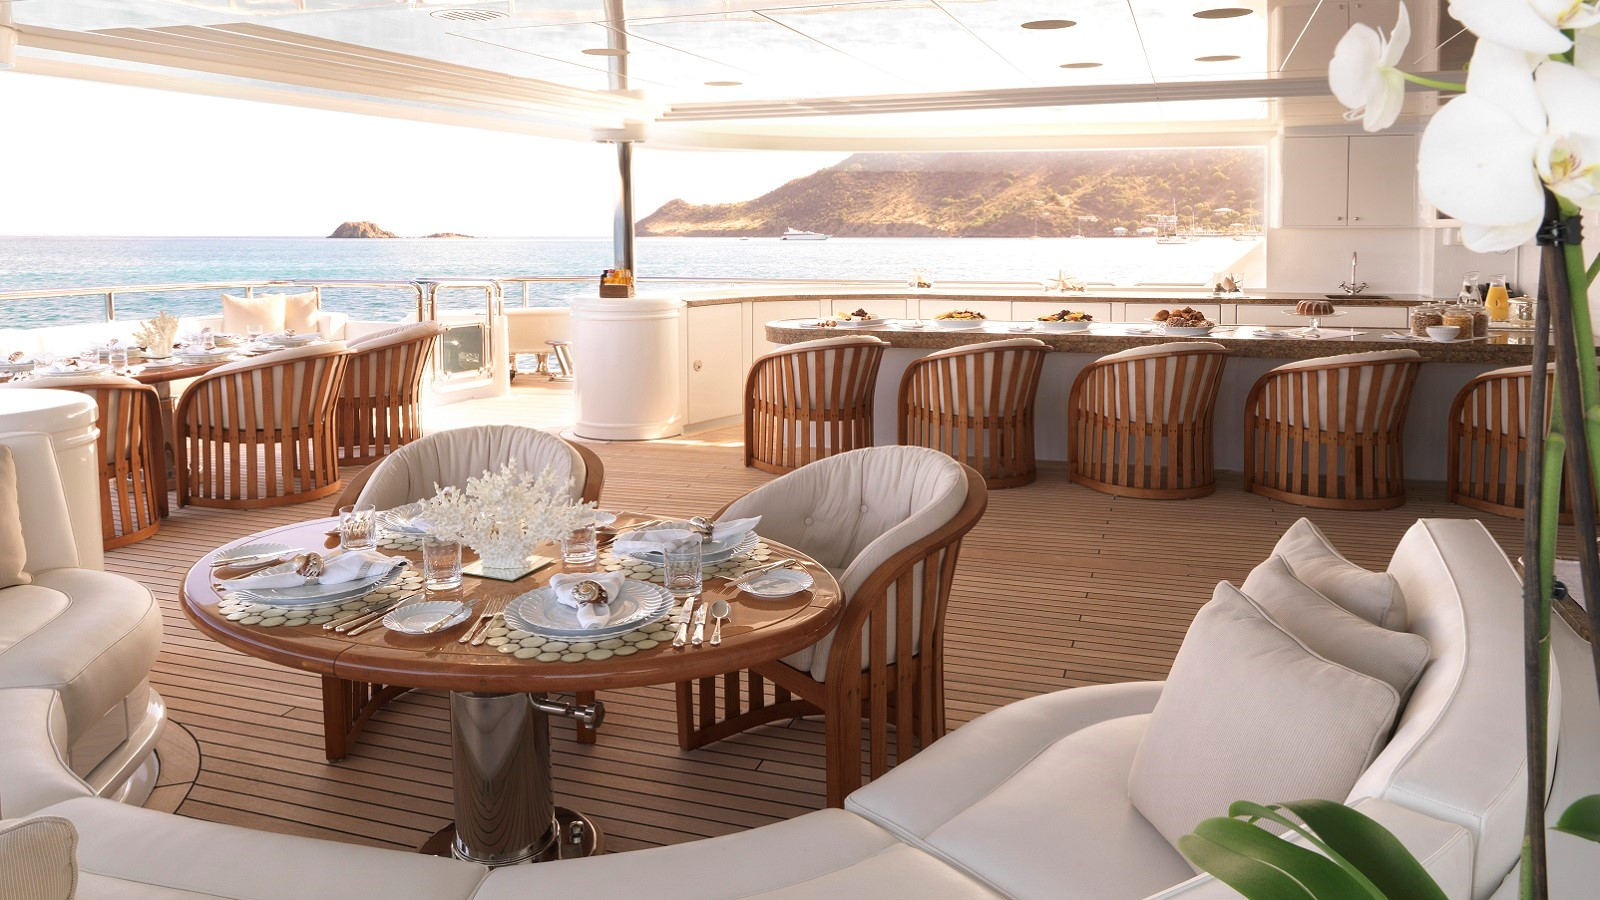 12 breakfast on the aft deck